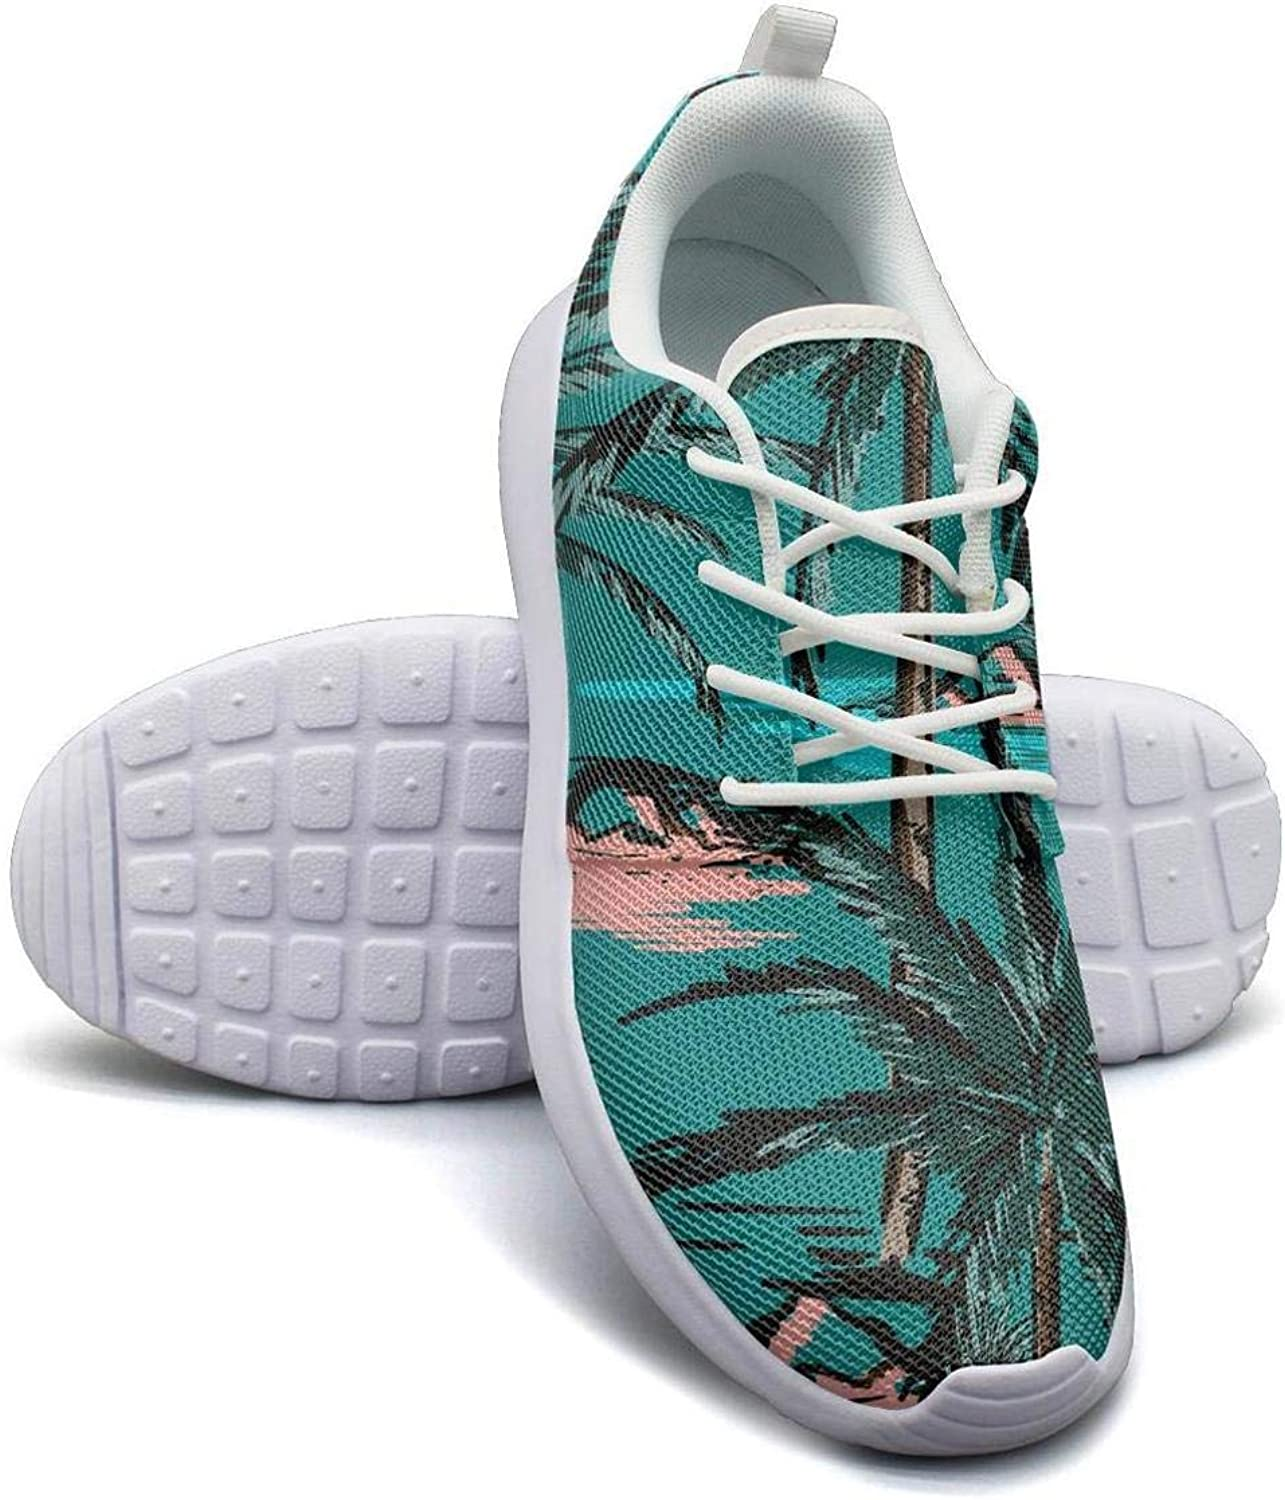 CHALi99 Fashion Women Lightweight Mesh shoes Tropical Floral Summer Beach Palm Sneakers Walking Rubber Sole